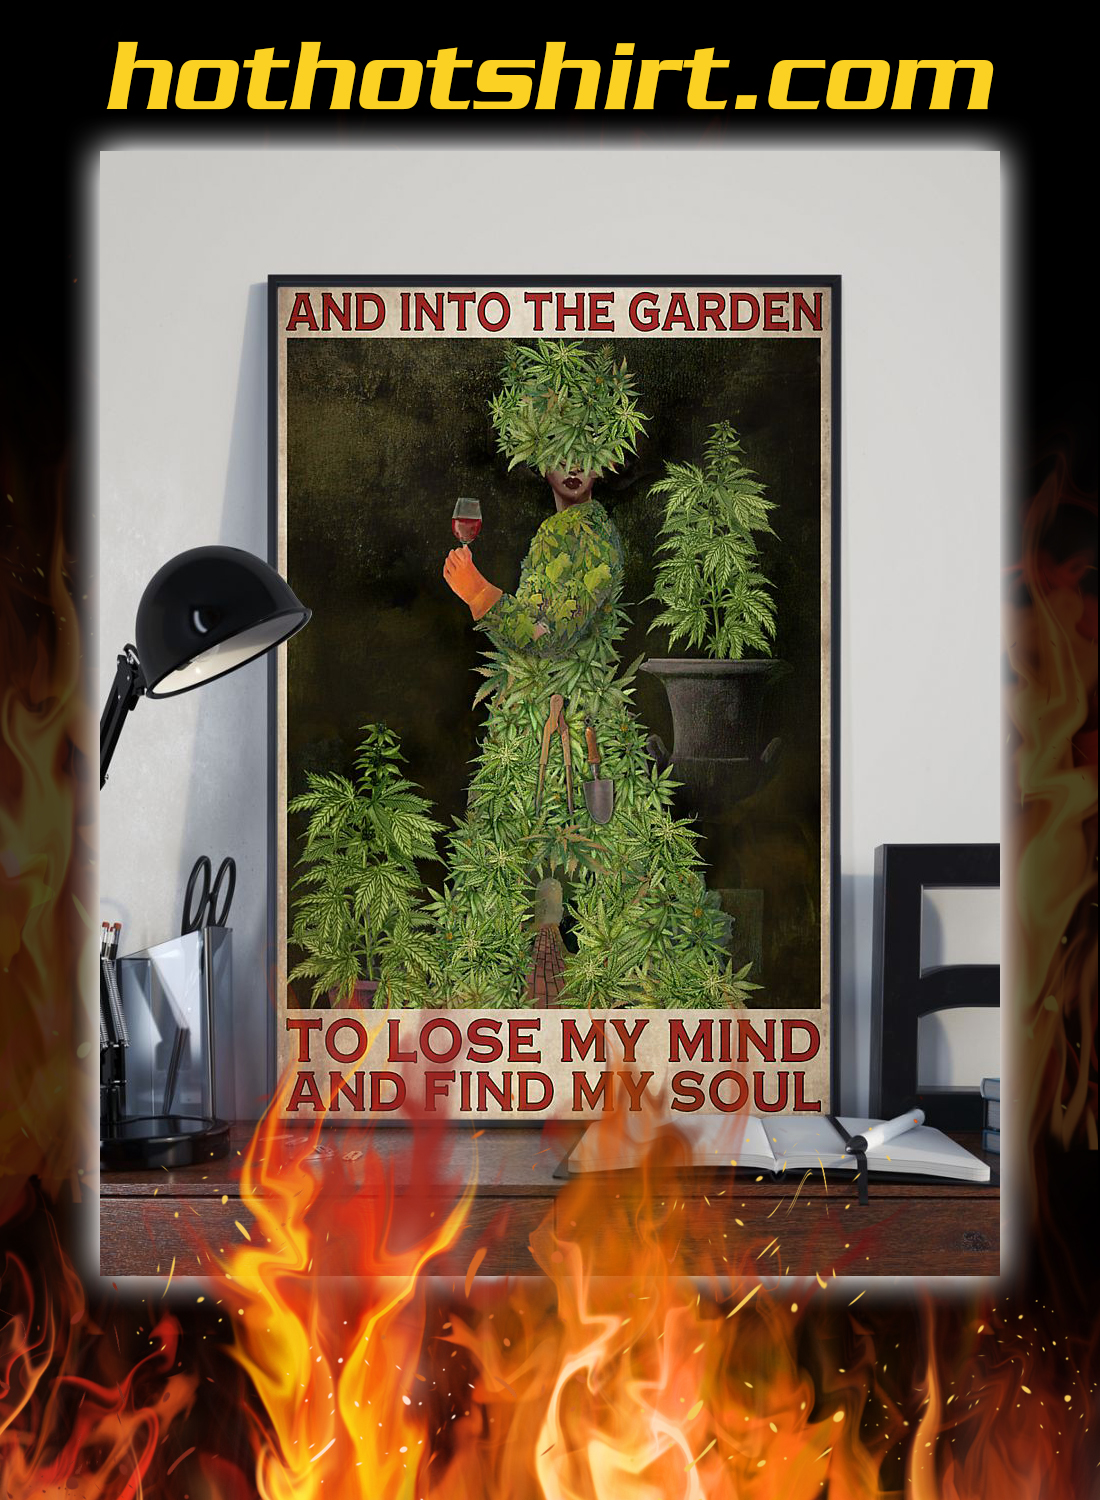 Weed cannabis and into the garden to lose my mind poster 2